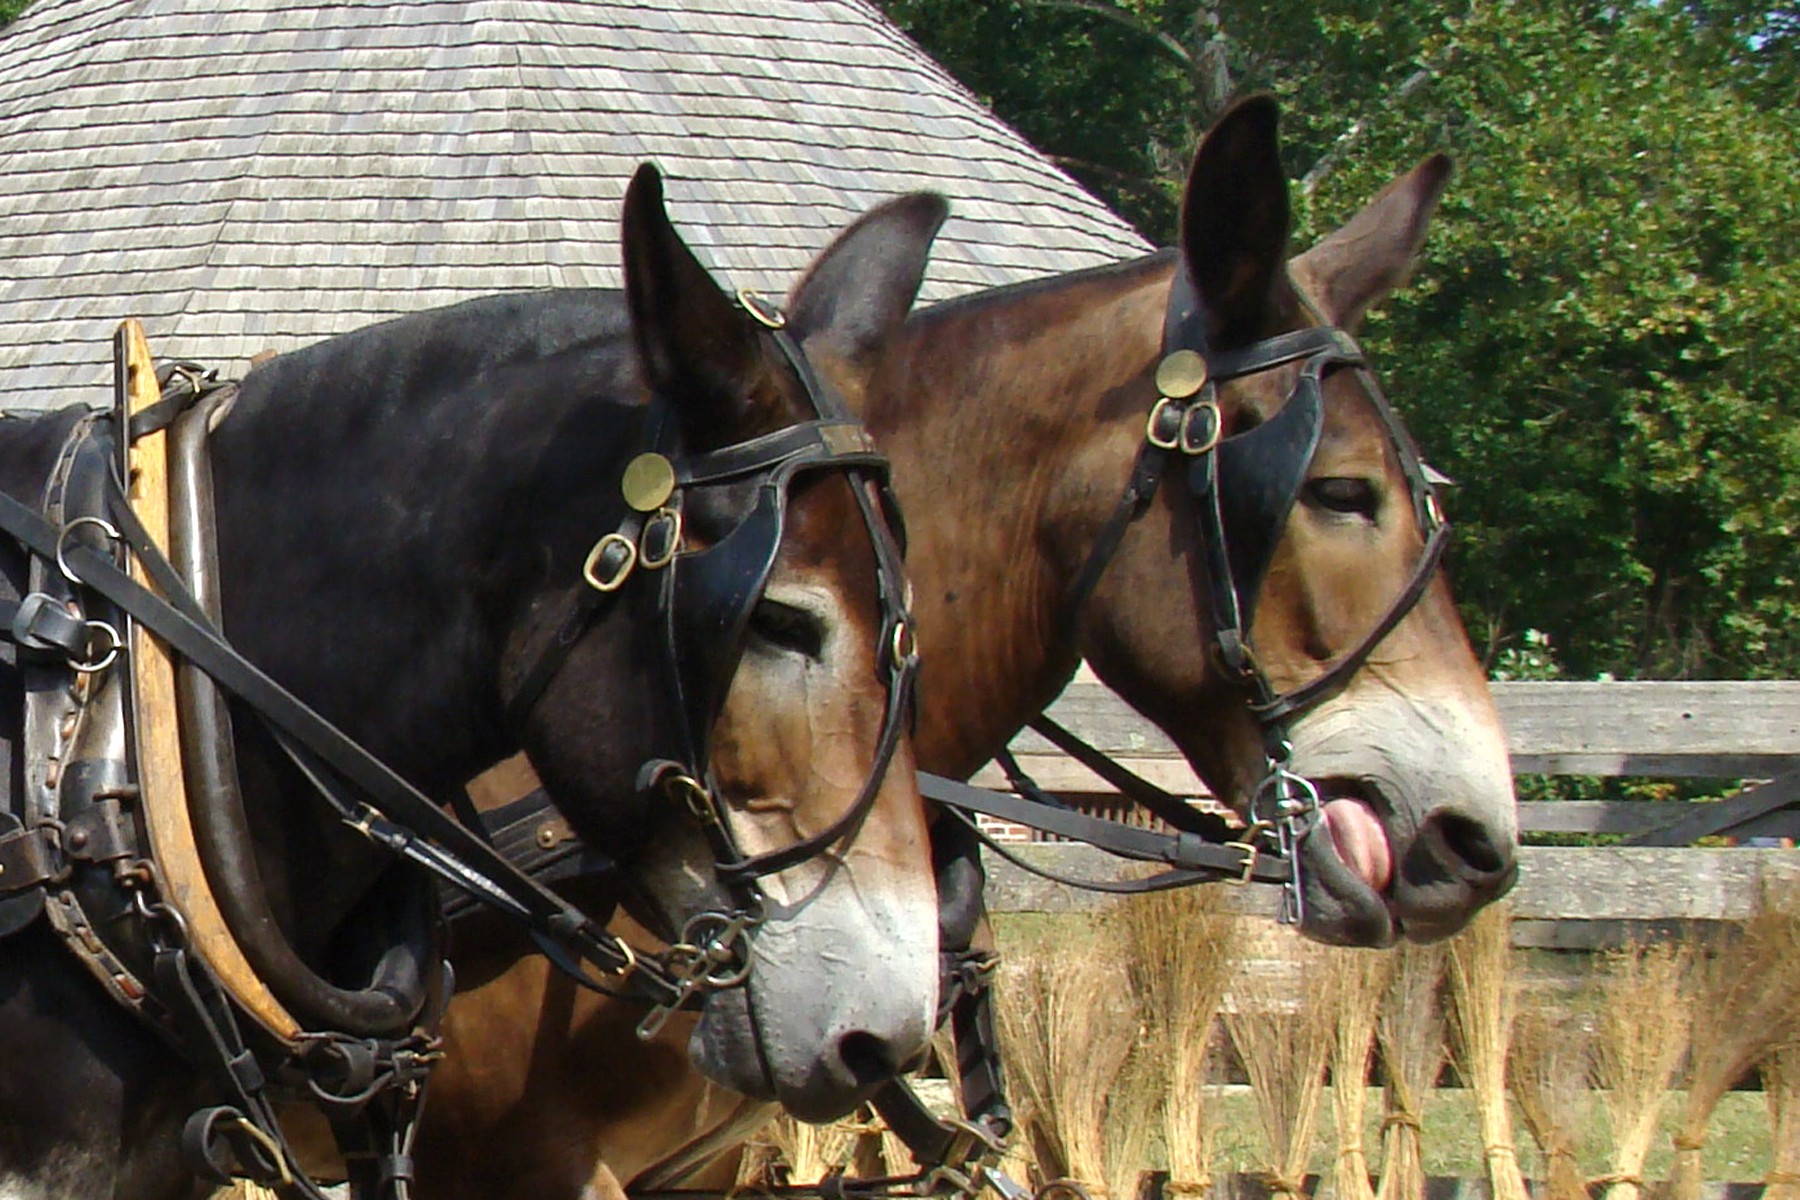 Mount Vernon (KY) United States  city photos gallery : Washington helped promote the use of mules in the United States